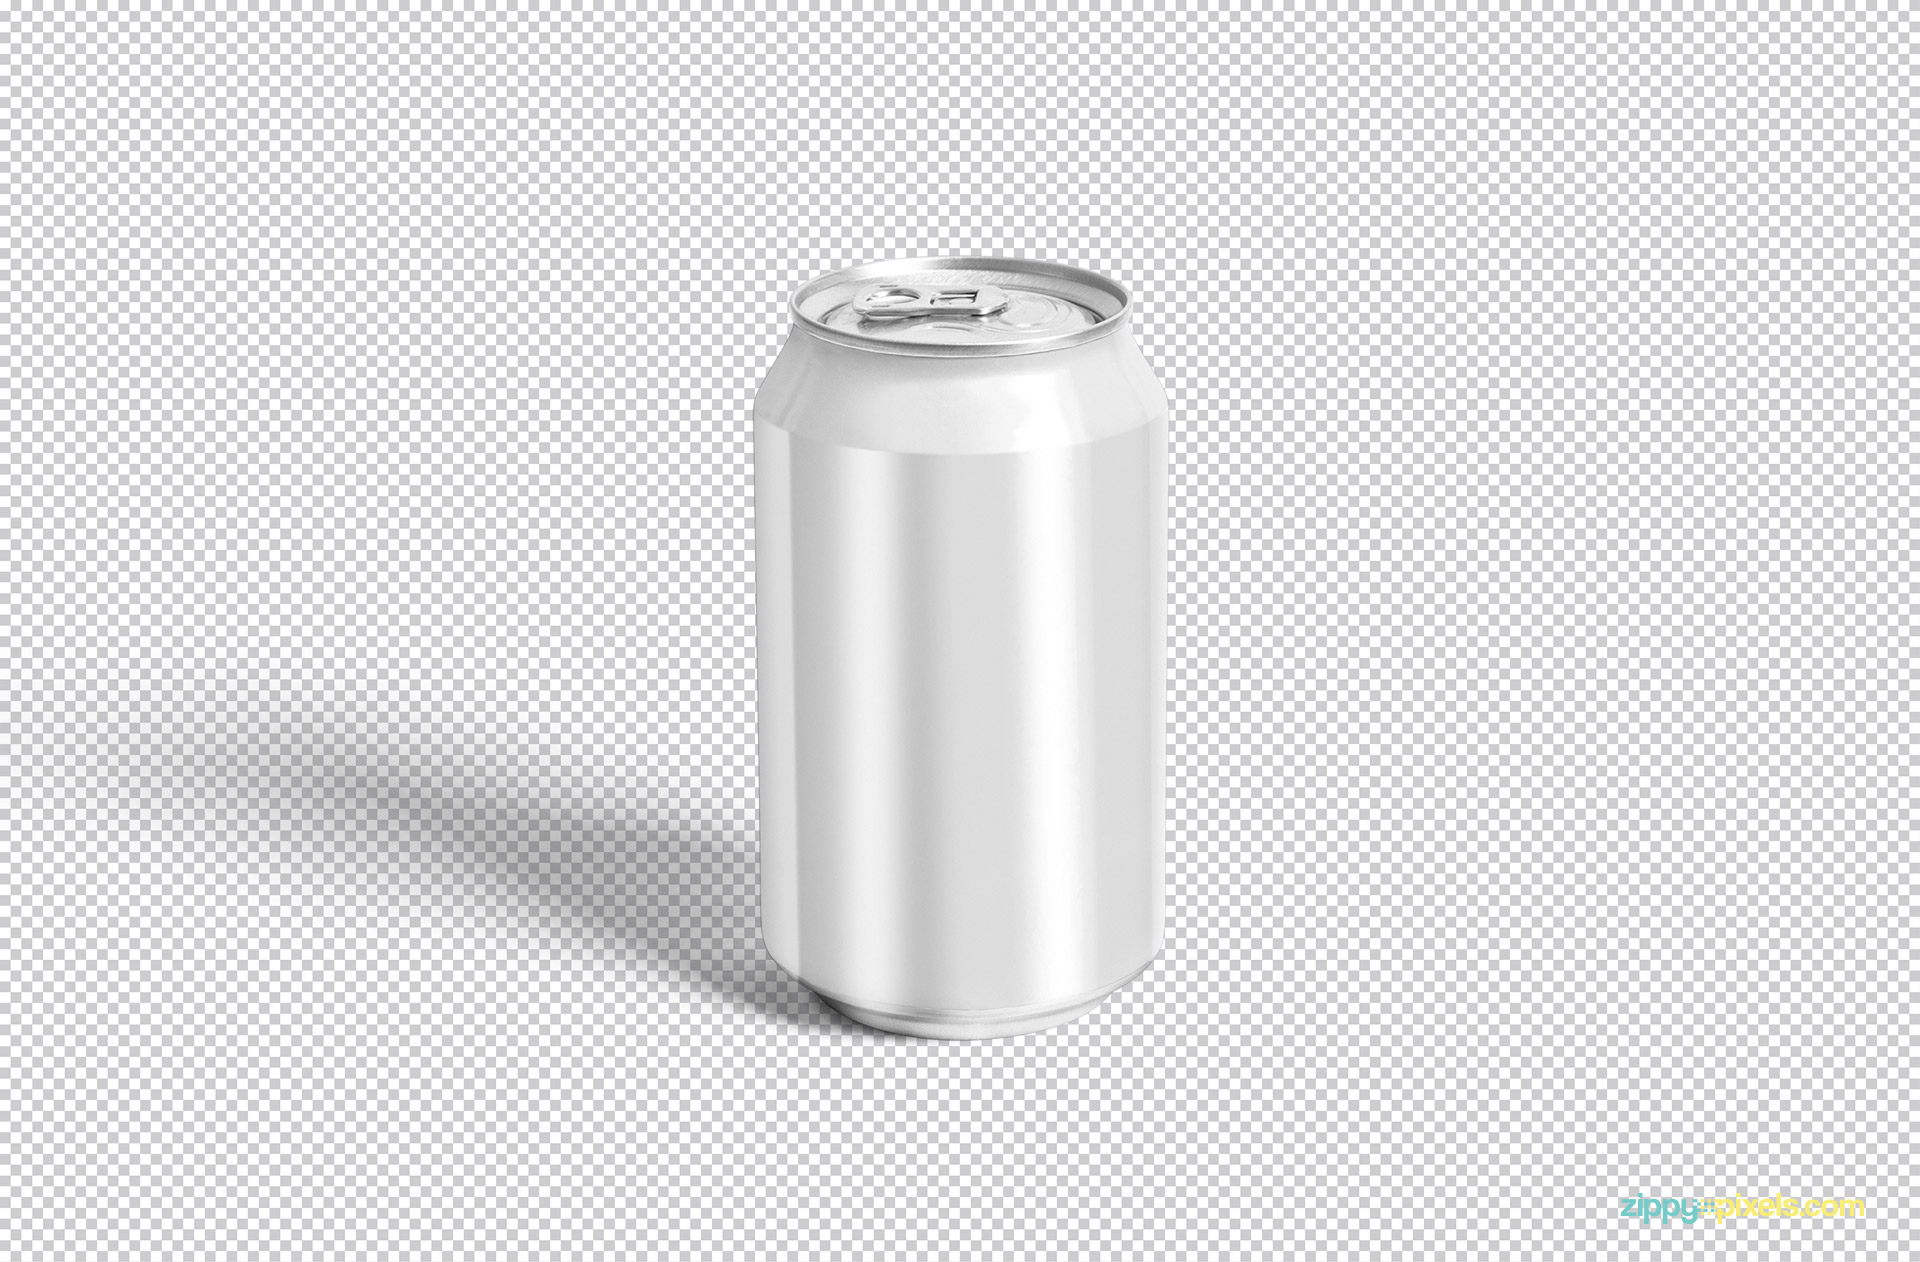 Every single part of this soda can mockup is editable.